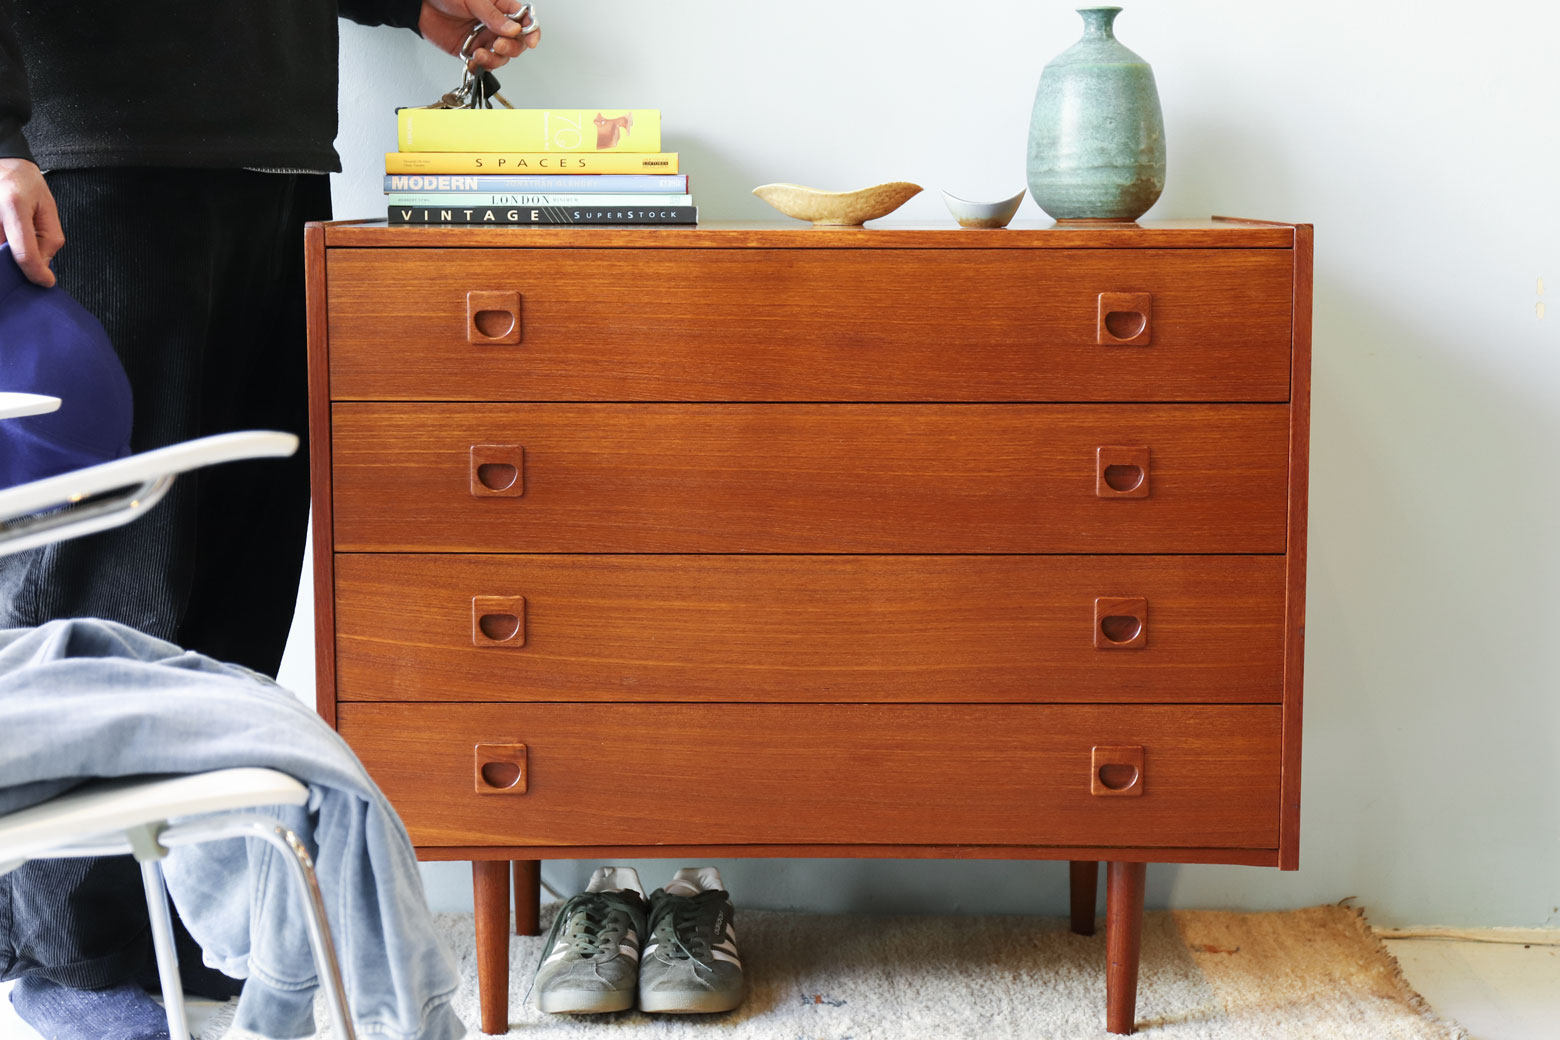 Danish Vintage Chest/デンマーク ヴィンテージ チェスト 4段 チーク材 北欧 家具